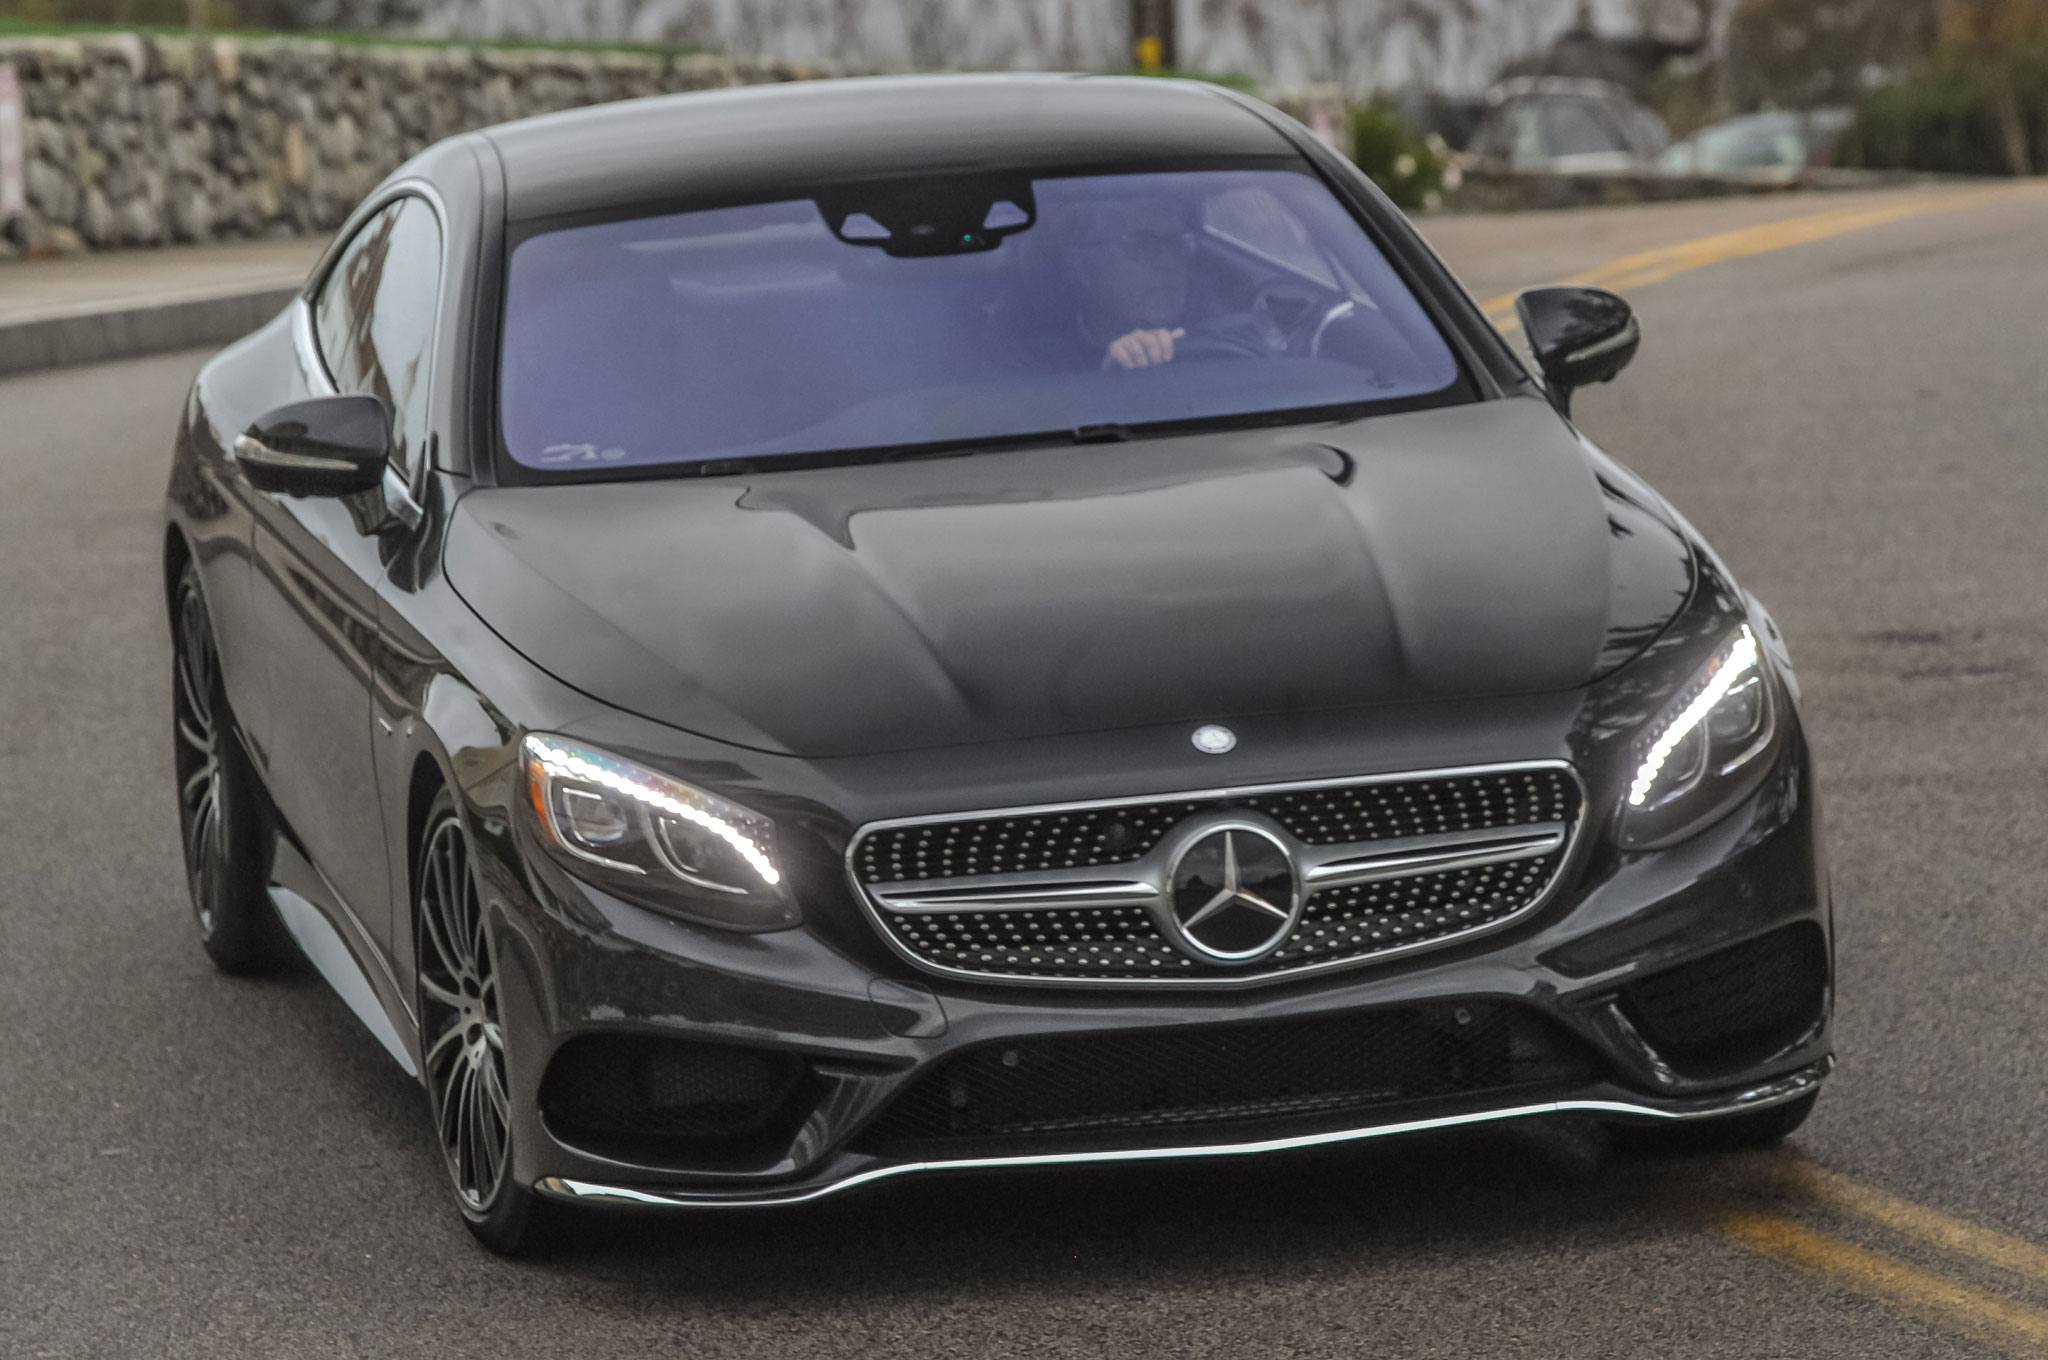 https://st.automobilemag.com/uploads/sites/11/2015/07/2015-Mercedes-Benz-S550-coupe-front-three-quarter-view-in-motion-2.jpg